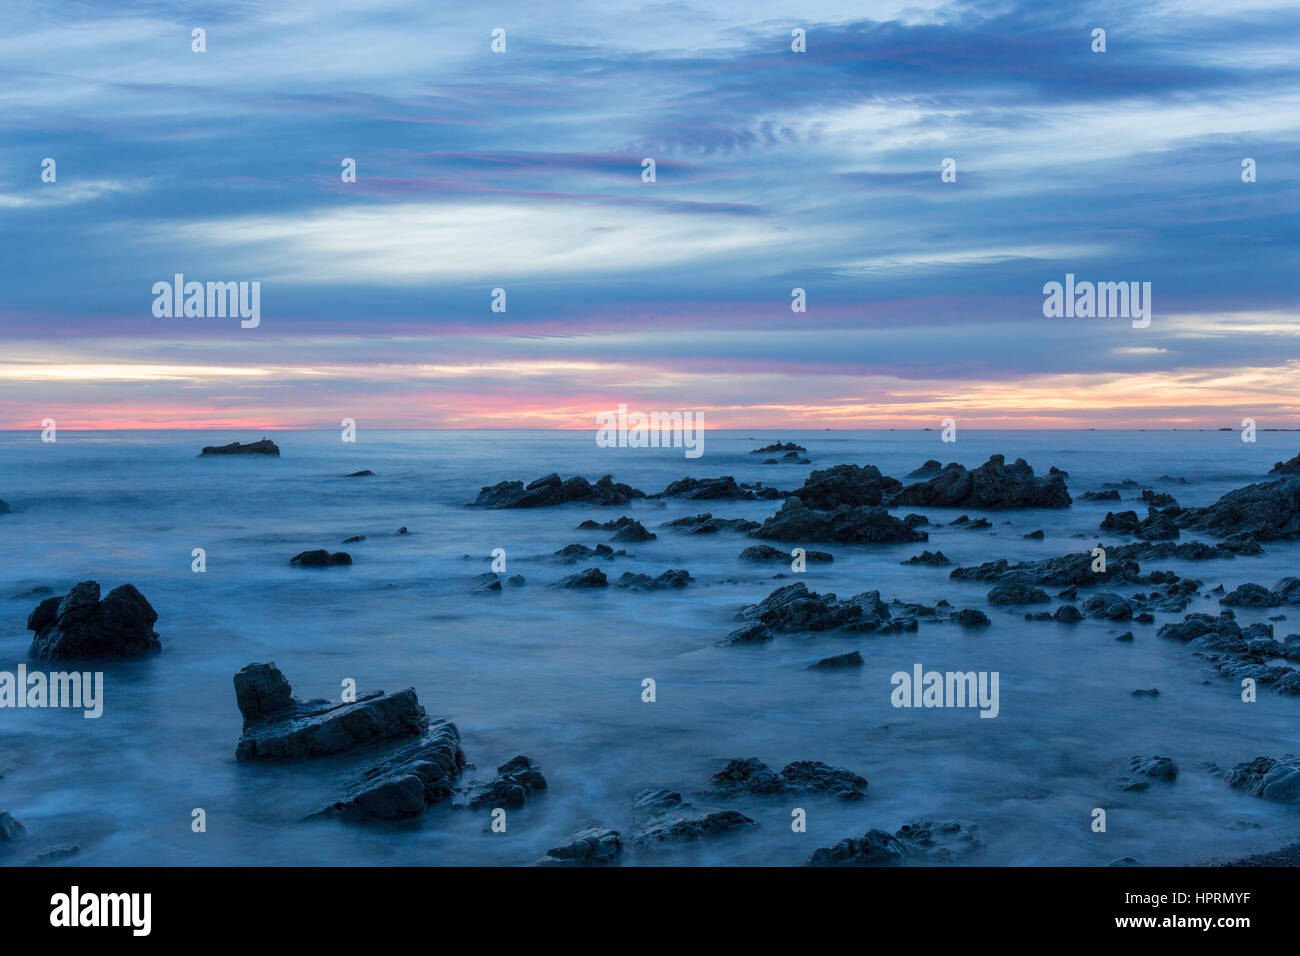 Kaikoura, Canterbury, New Zealand. View across the Pacific Ocean from rocky shoreline at dawn. - Stock Image